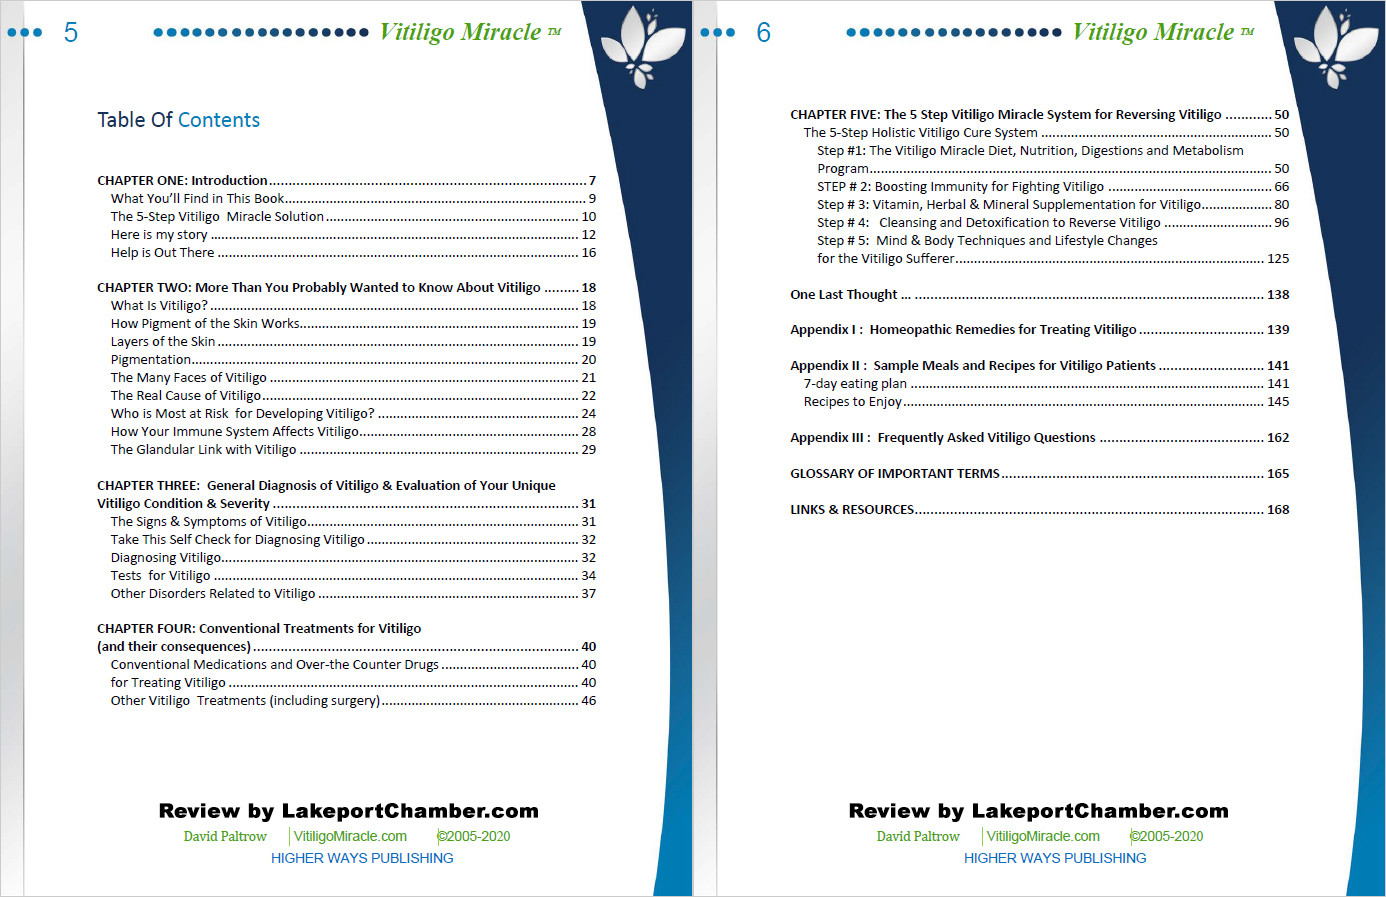 Vitiligo Miracle Table of Contents